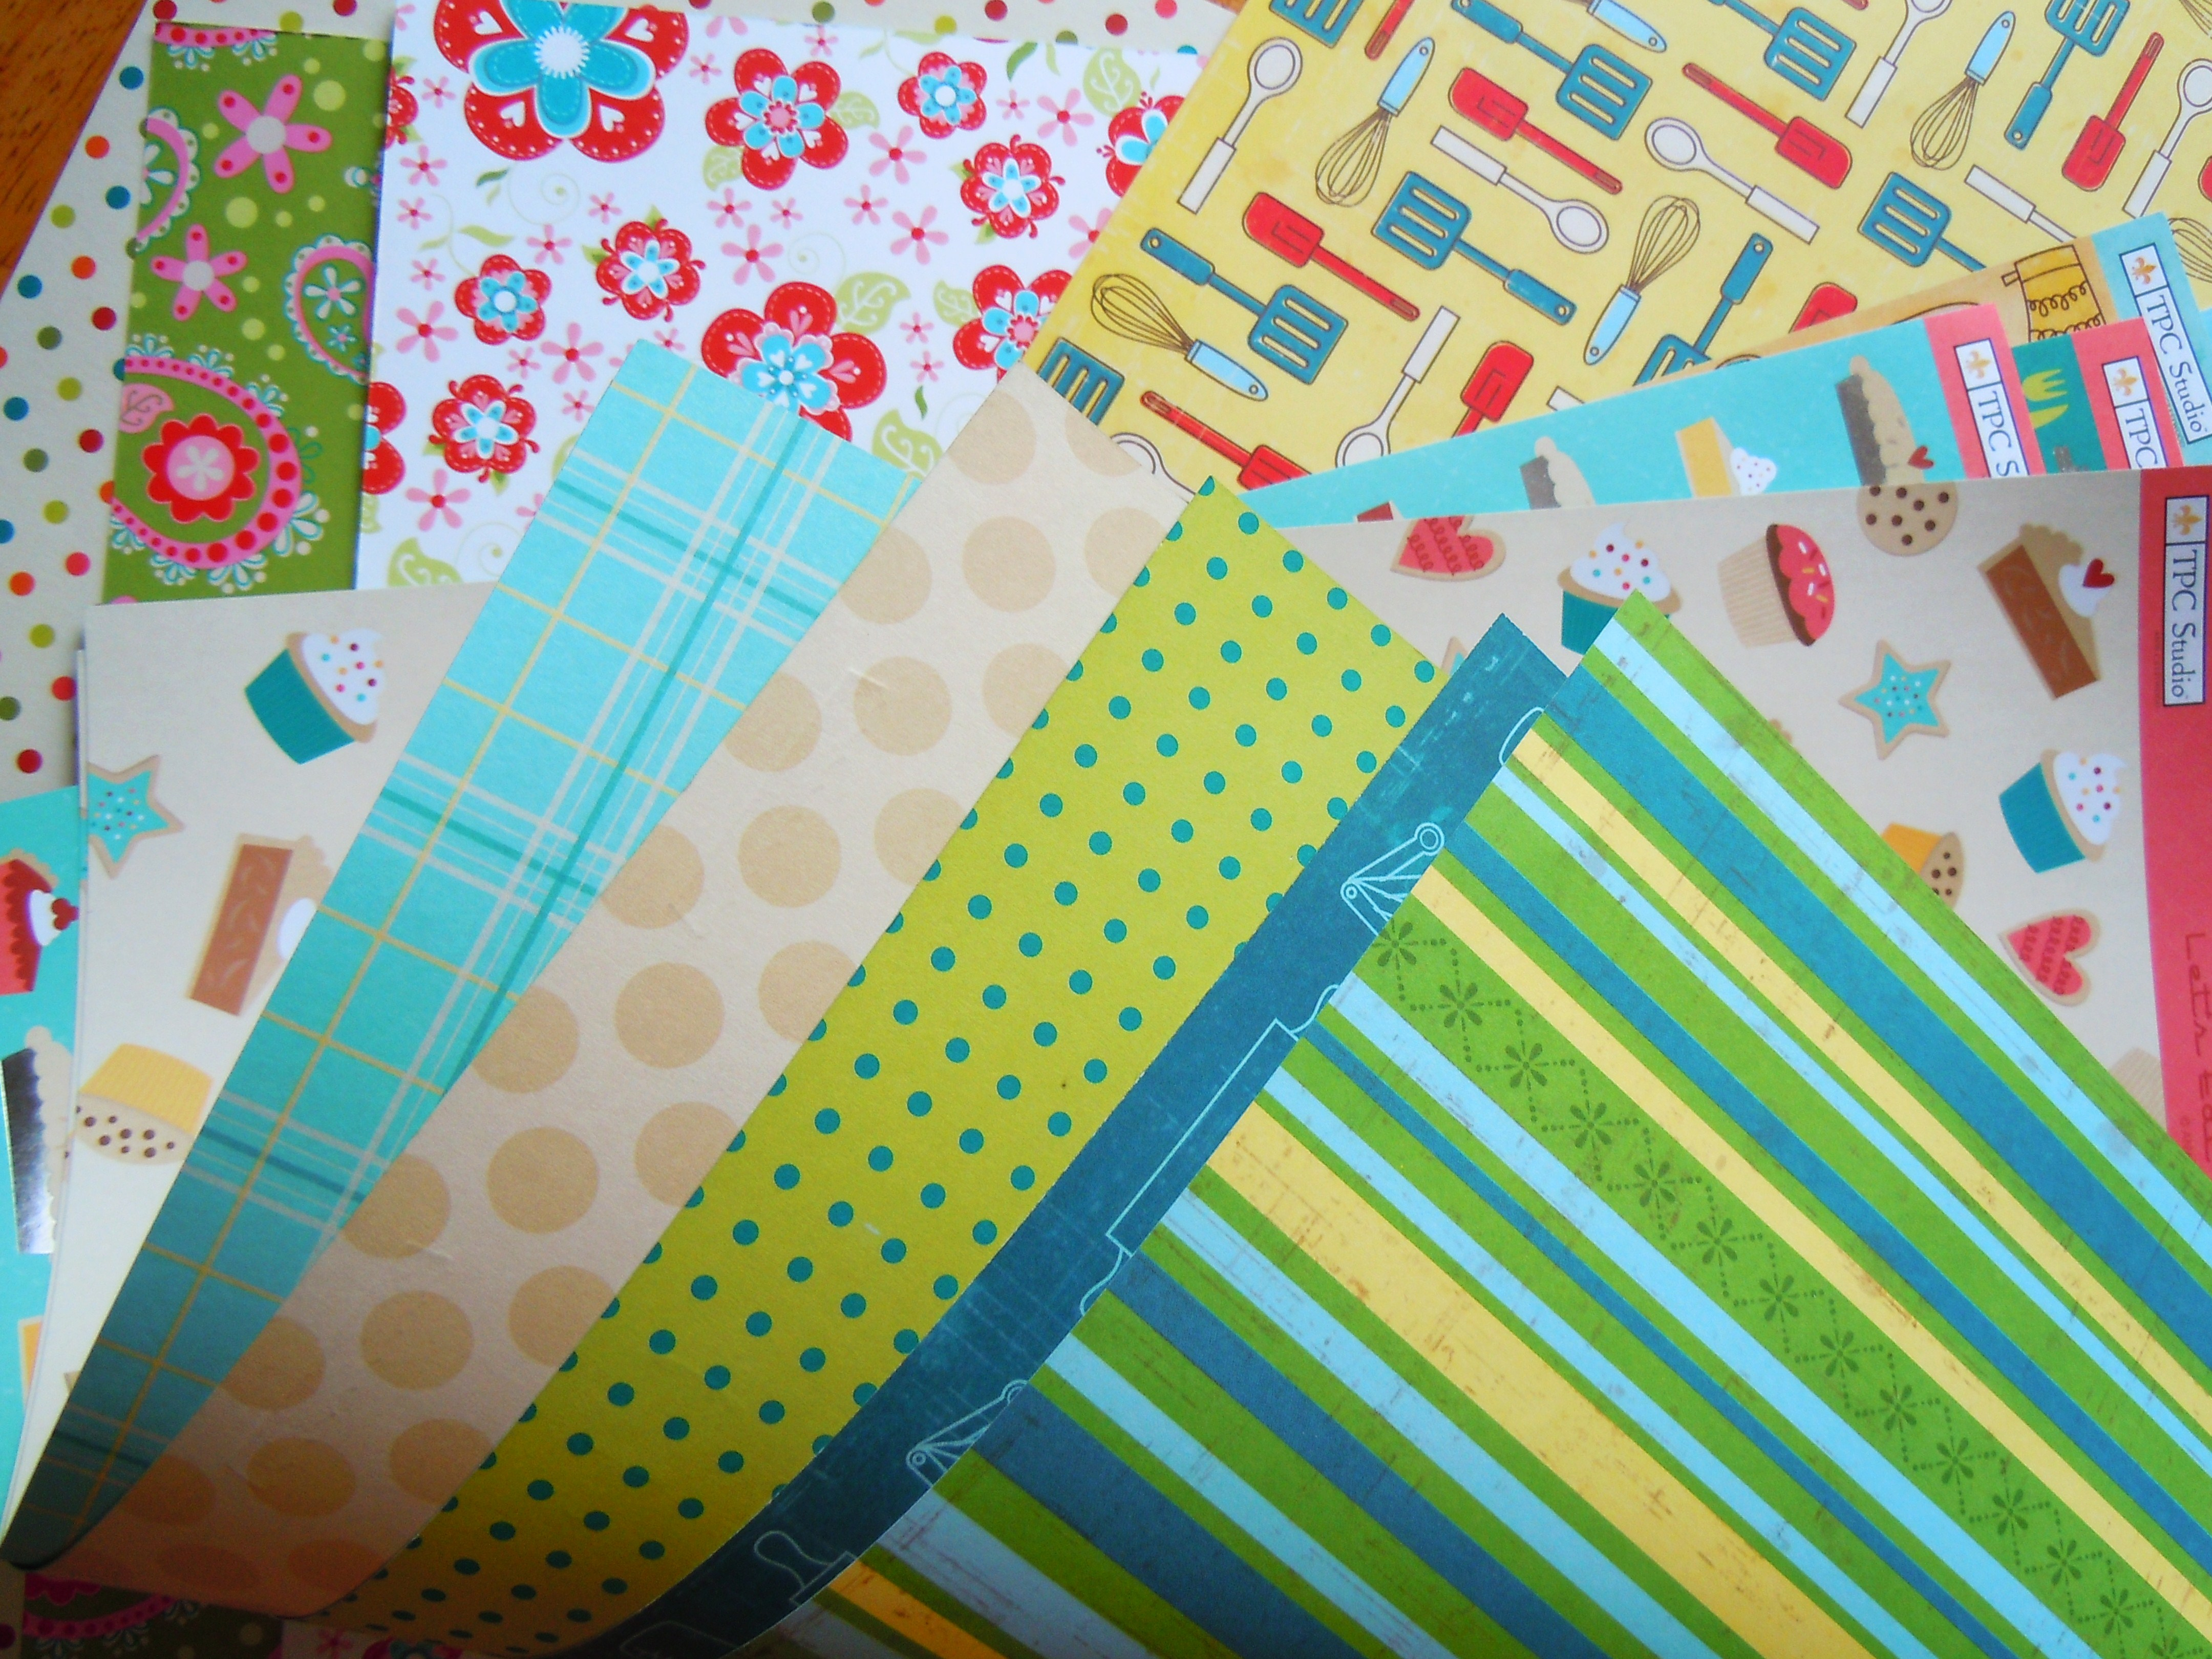 Scrapbook paper carrying case - De Serres Has The Most Amazing Selection Of Patterned Paper And The Best Part They Carry A Ton Of Cardstock And Paper Pads By My Favourite Scrapbook Brand